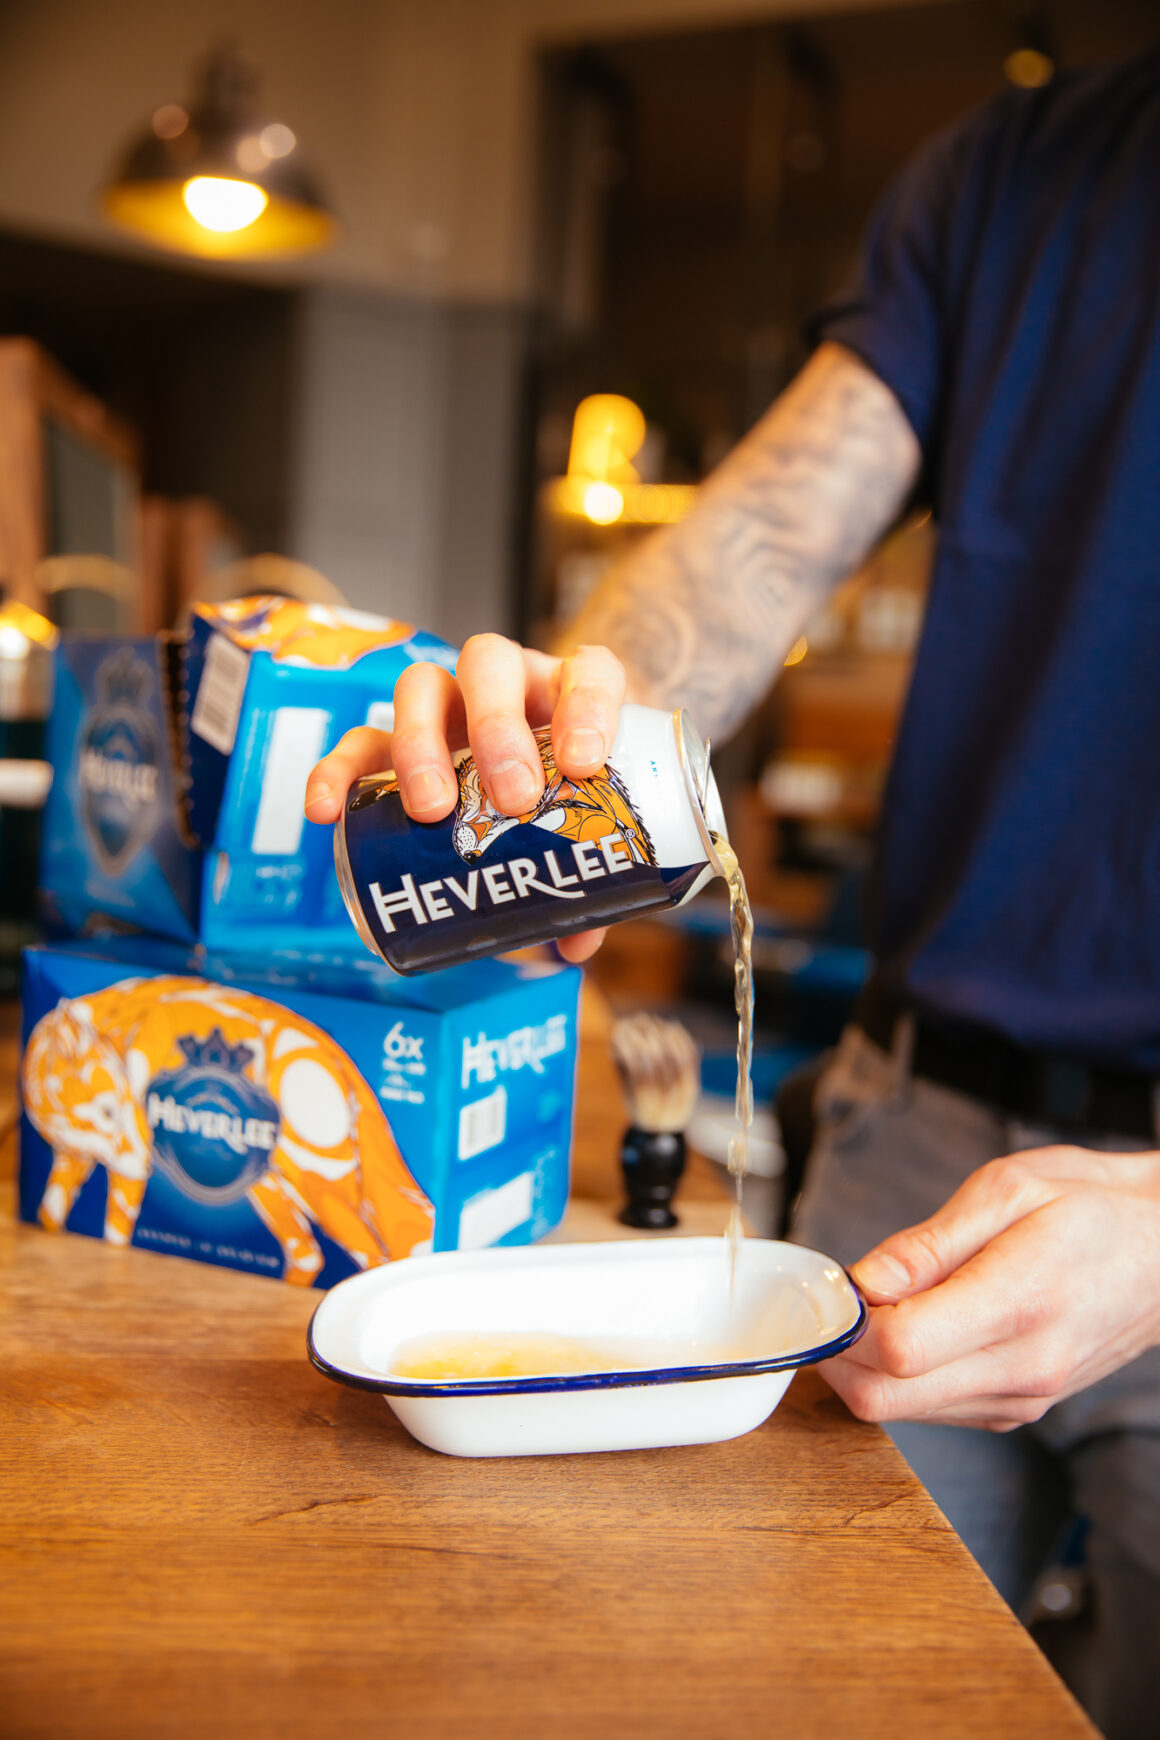 Ruffians to pioneer the first UK beer spa treatment - Heverlee